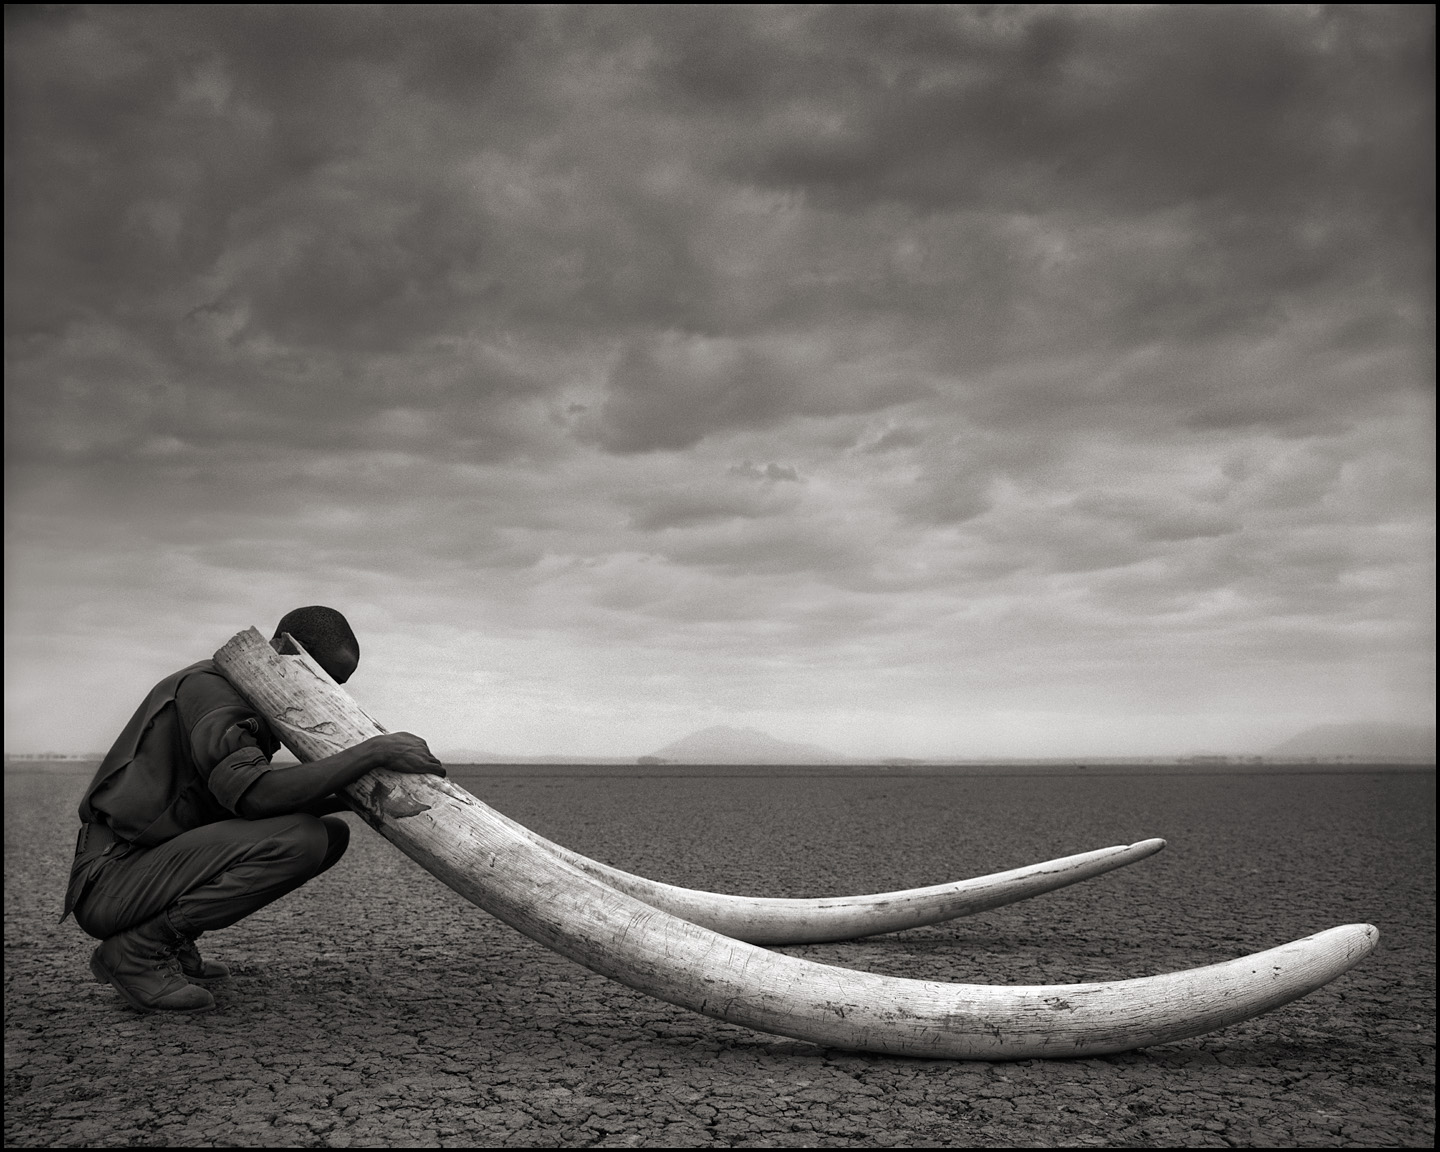 © Nick Brandt, Ranger with Tusks of Killed Elephant, Amboseli, 2011. Courtesy of the Artist and Hasted Kraeutler, NYC.